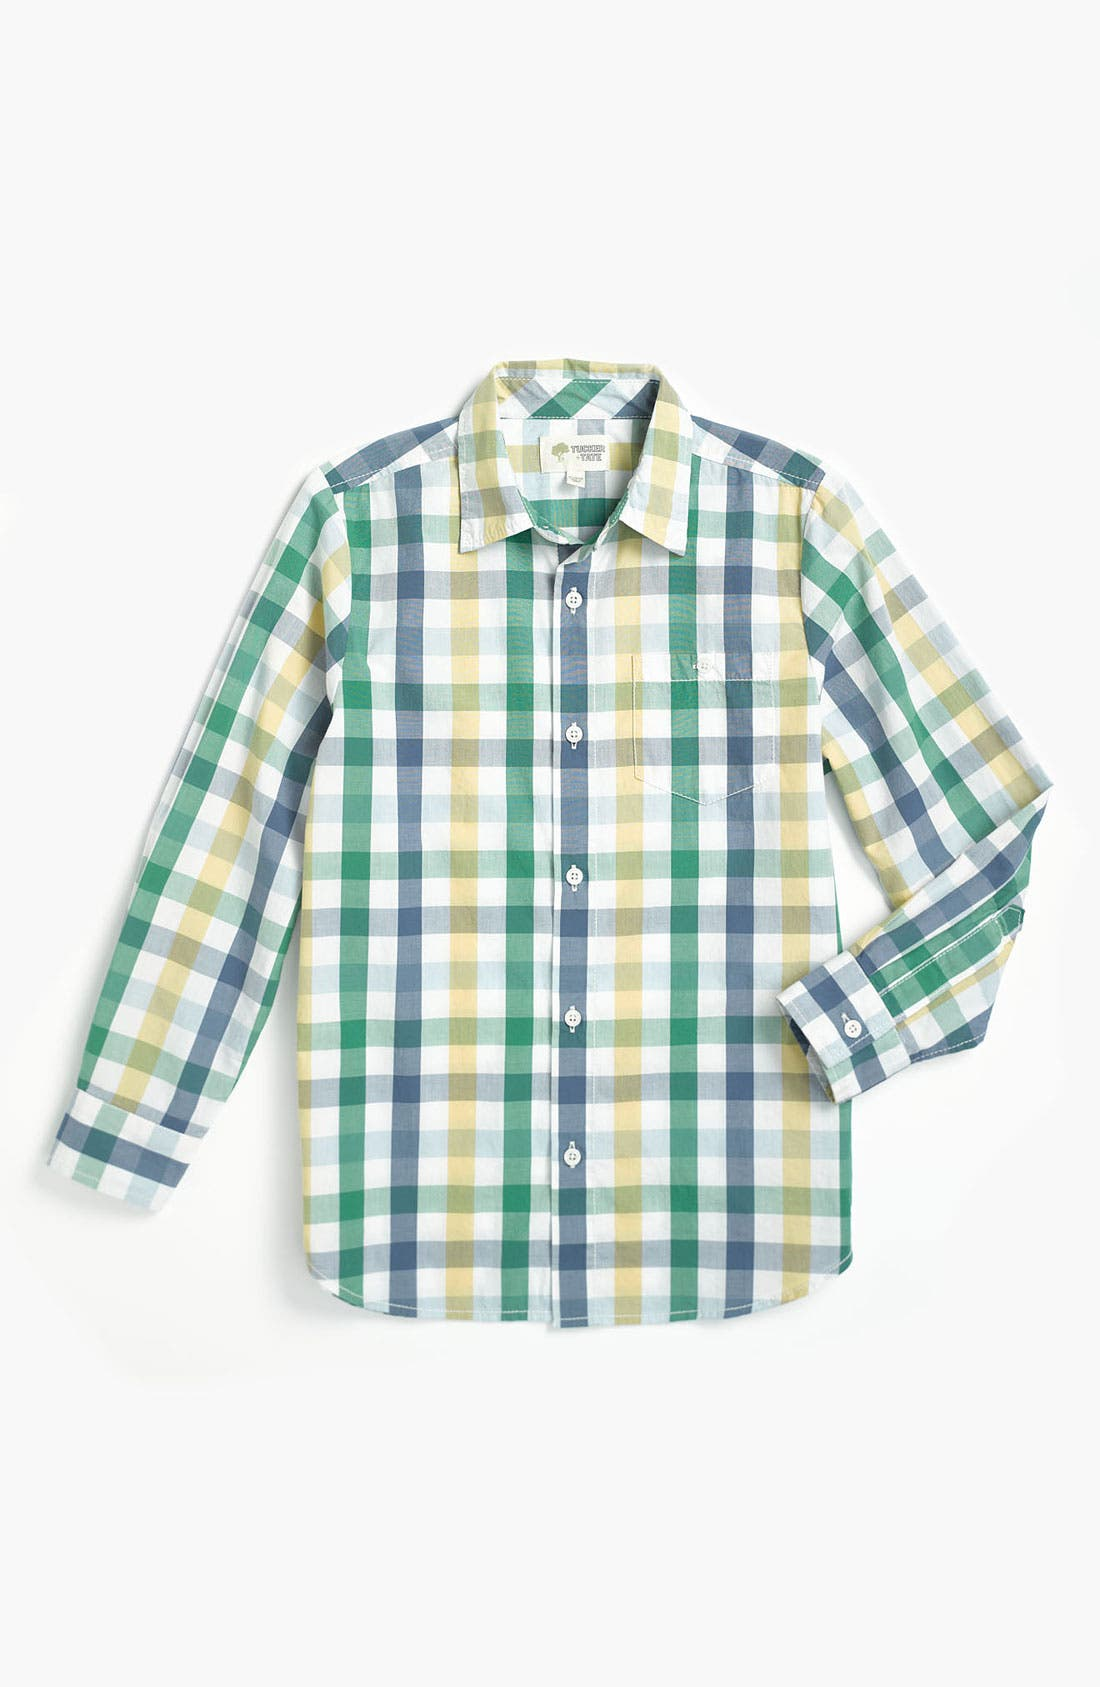 Main Image - Tucker + Tate 'Allister' Poplin Shirt (Big Boys)